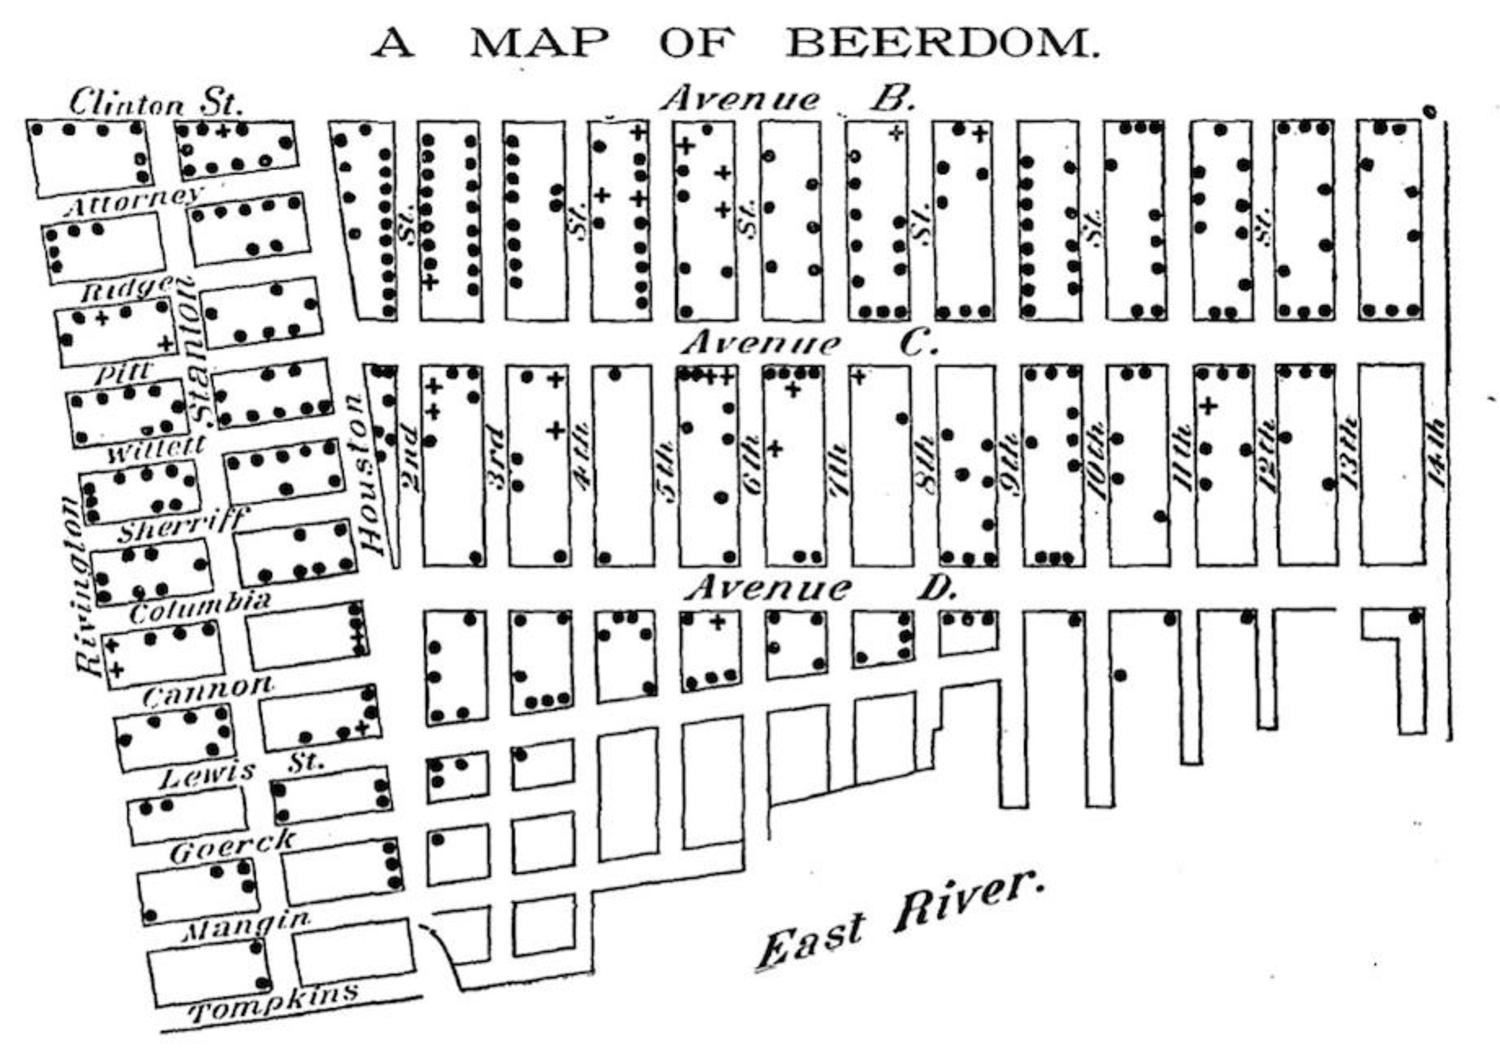 Lower East Side New York Map.Check Out This 1885 Beer Map Showing All Bars On The Lower East Side